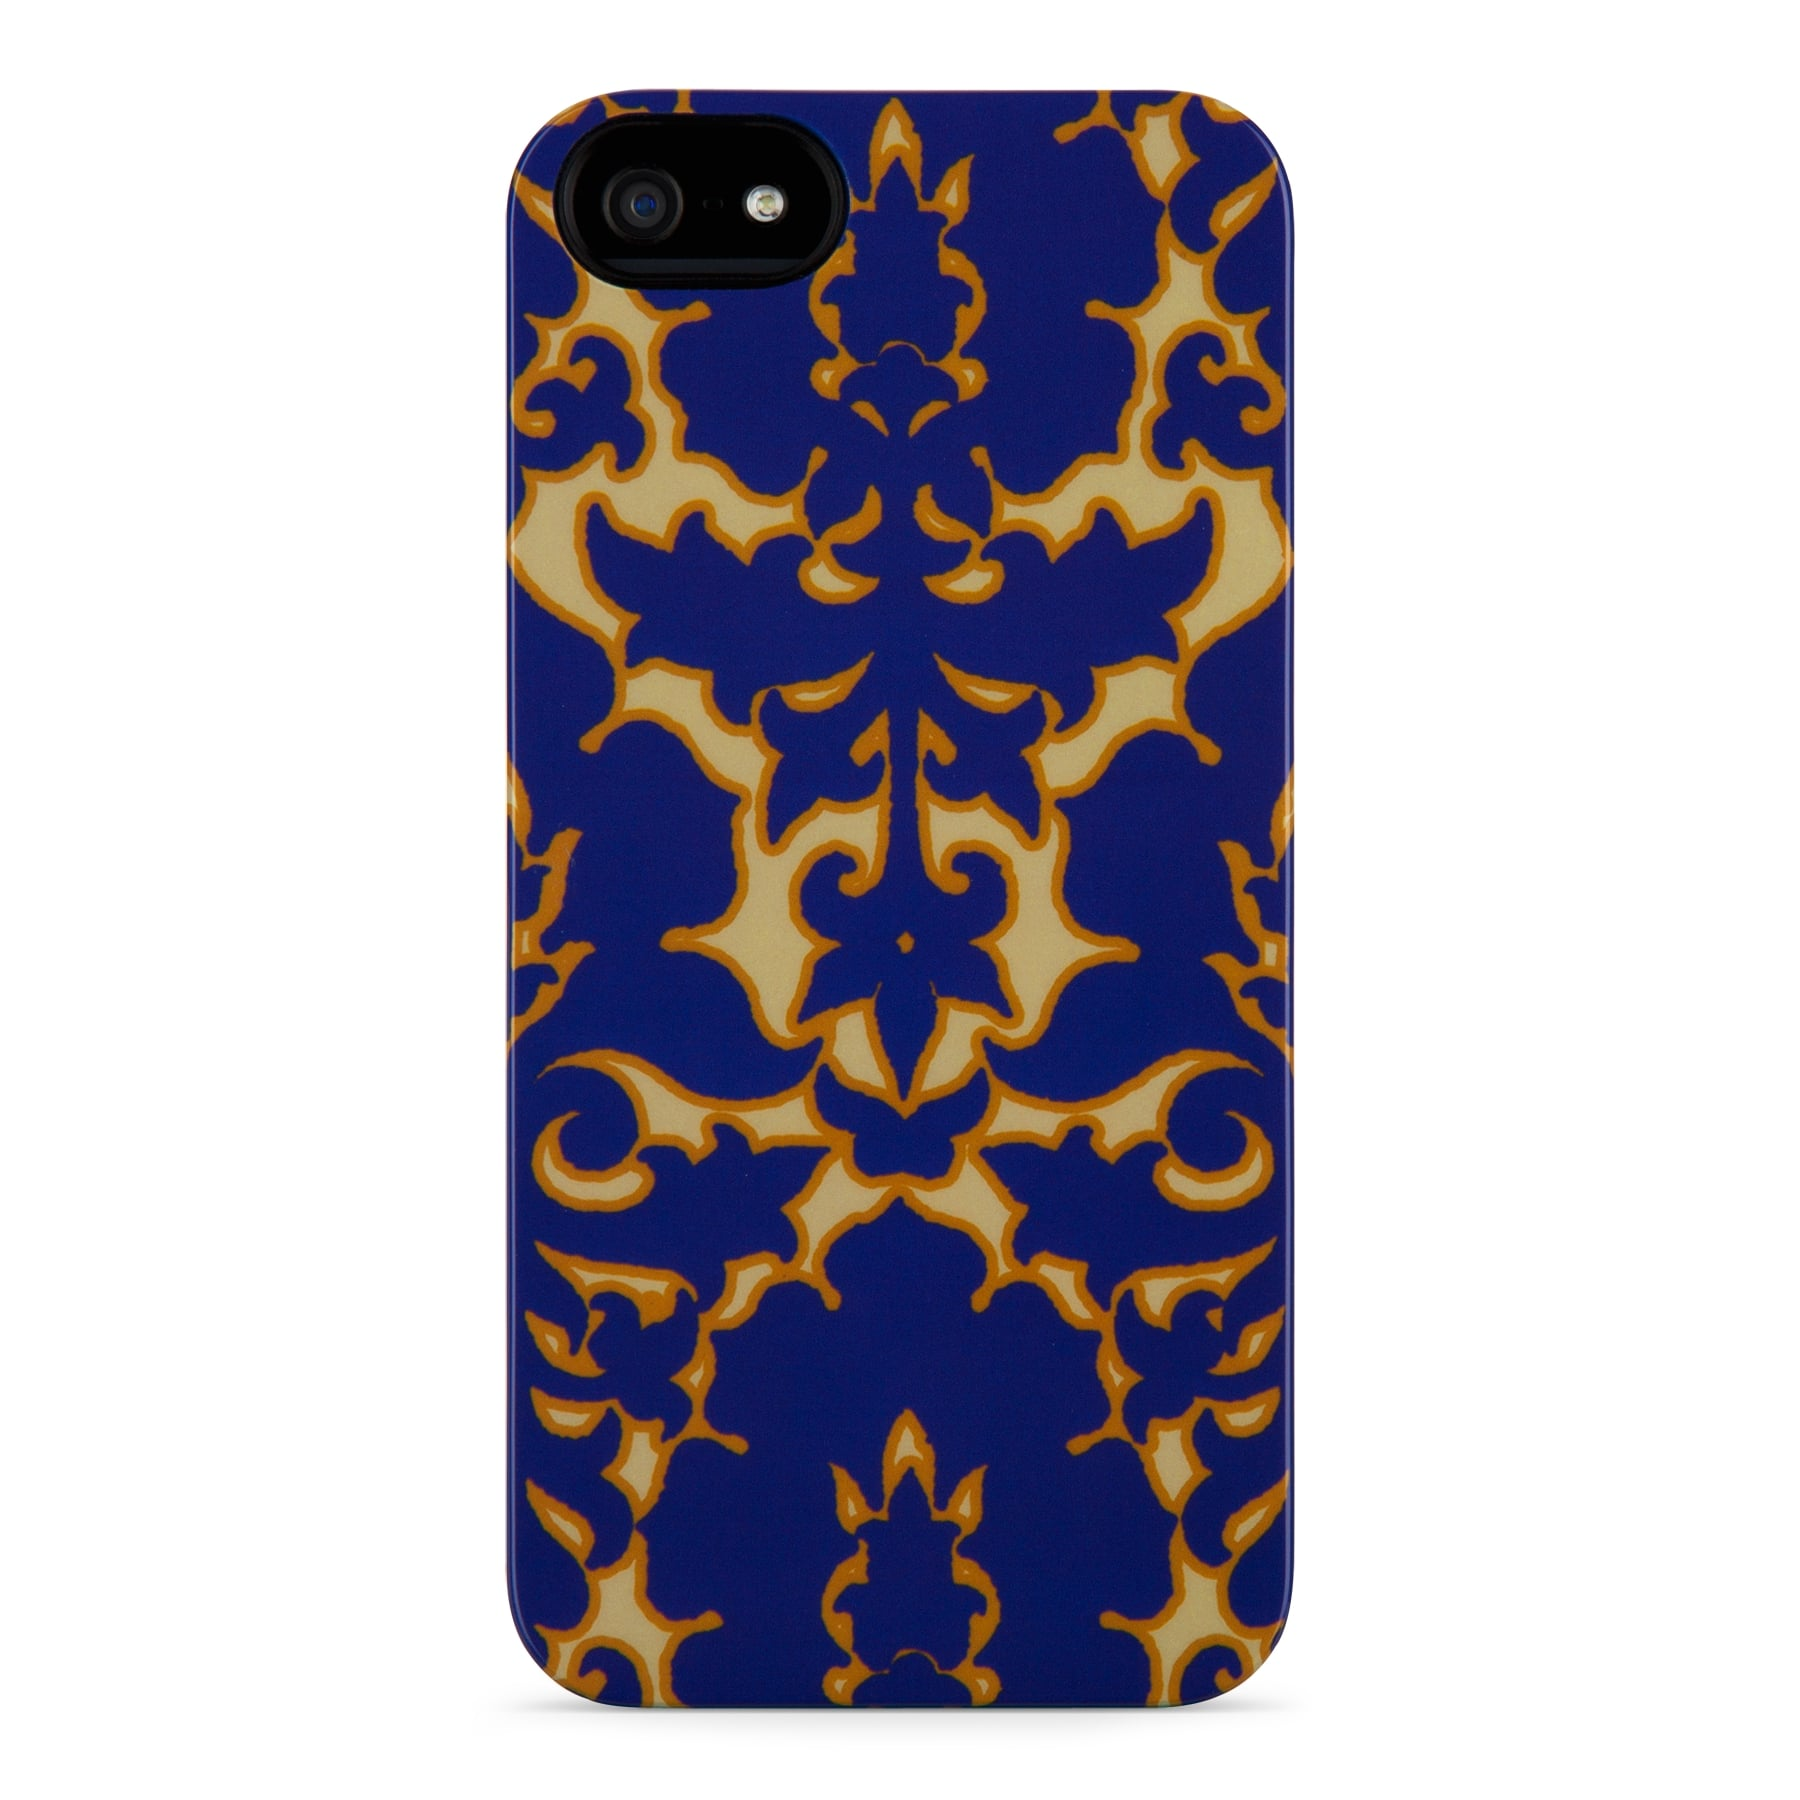 Tracy Reese For Belkin iPhone Case